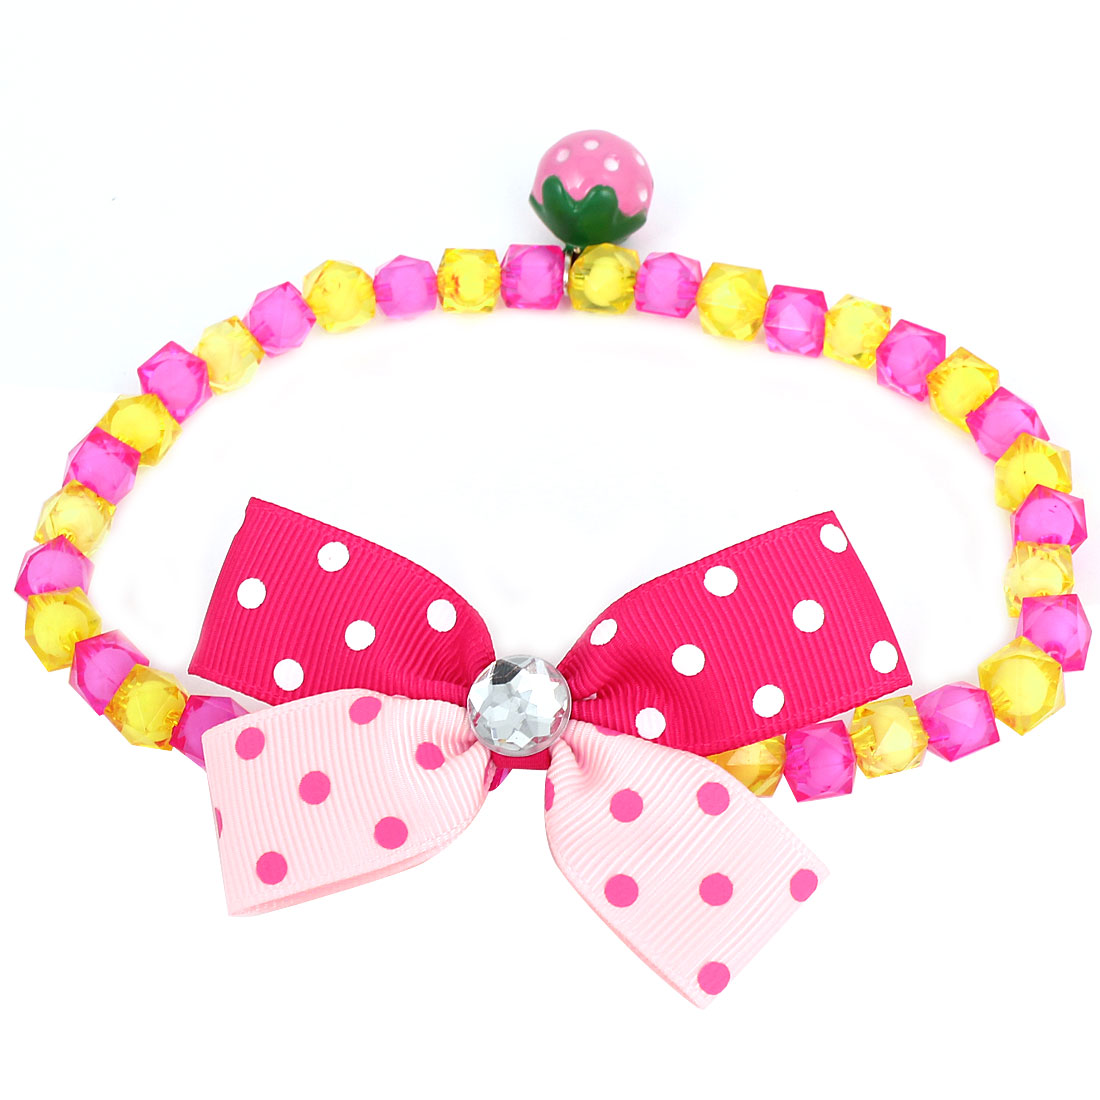 Metal Bell Pendant Bowtie Accent Pet Dog Plastic Beads Collar Necklace Fuchsia Yellow L